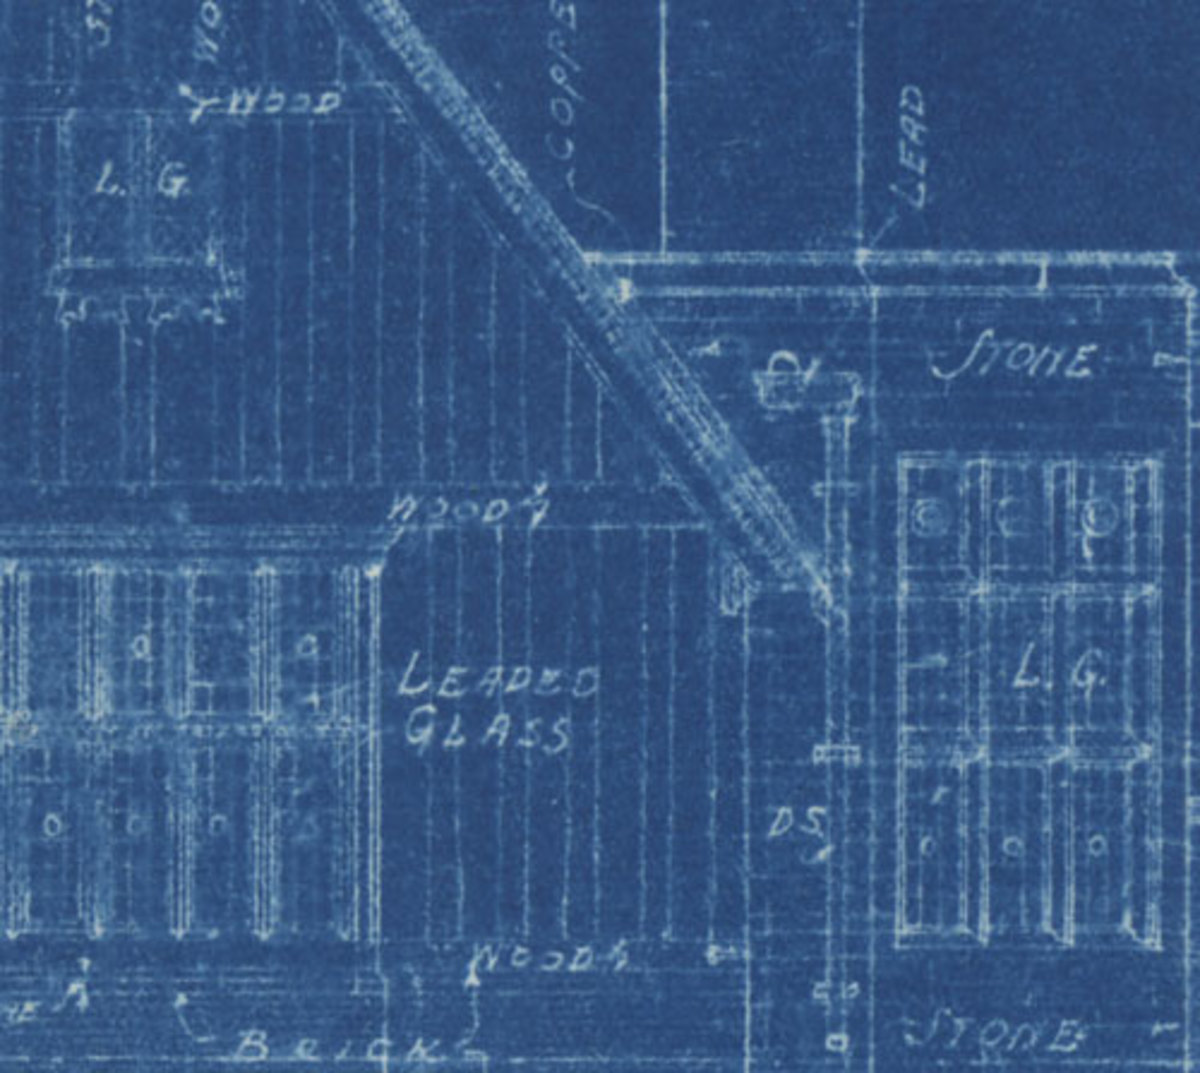 1932 blueprint, of a tennis house.  Notice the beautiful hand-lettering.